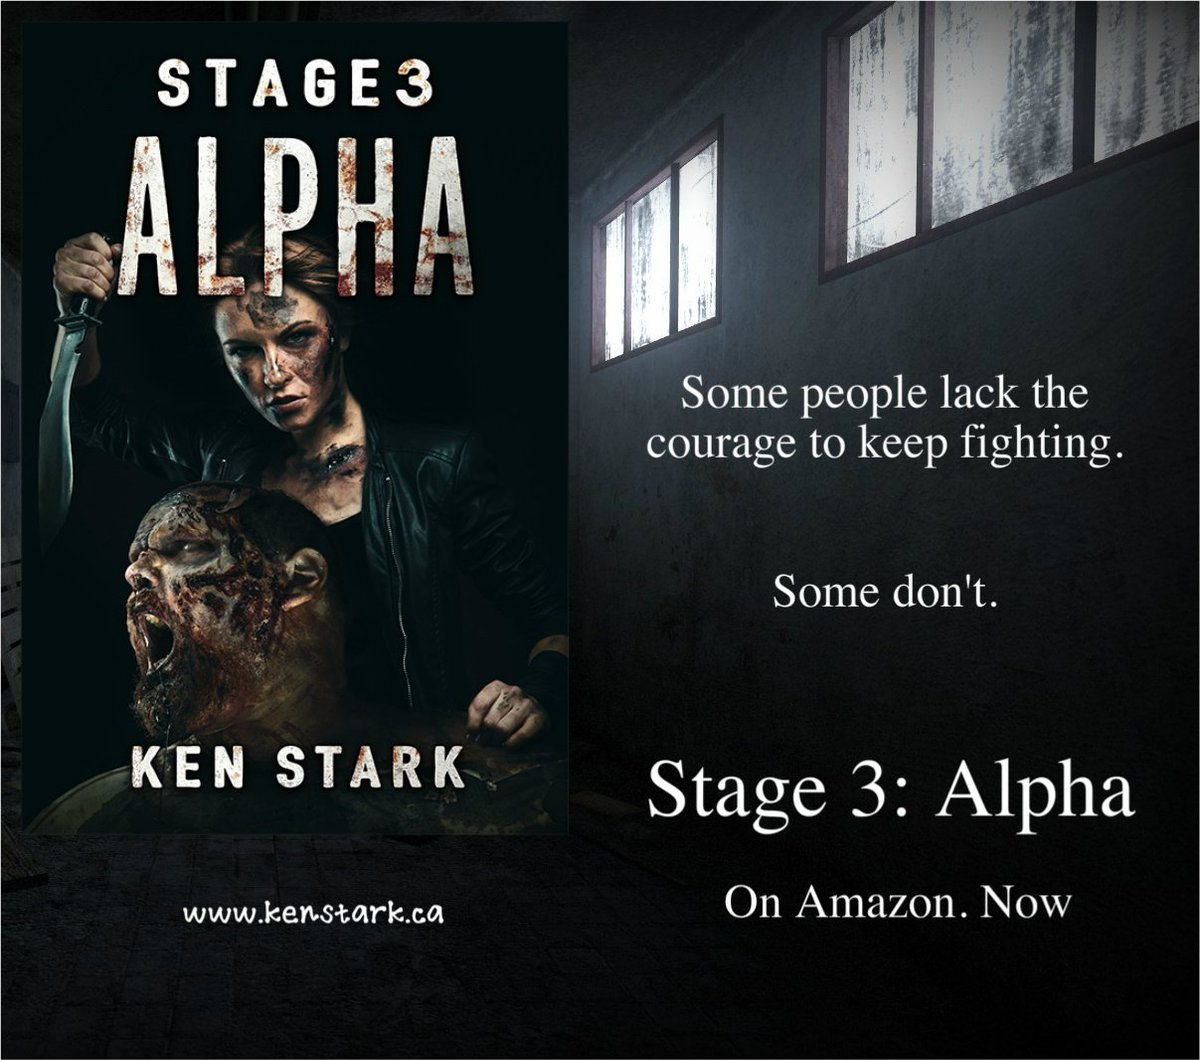 No more right, no more wrong. All that mattered now was survival.   https://www. amazon.com/dp/B072WNGG7W  &nbsp;                     #horror #zombie #survival #apocalypse #Stage3 #series #NewRelease  Read #Stage3Alpha for #FREE on #KindleUnlimited<br>http://pic.twitter.com/l93CEK74wT